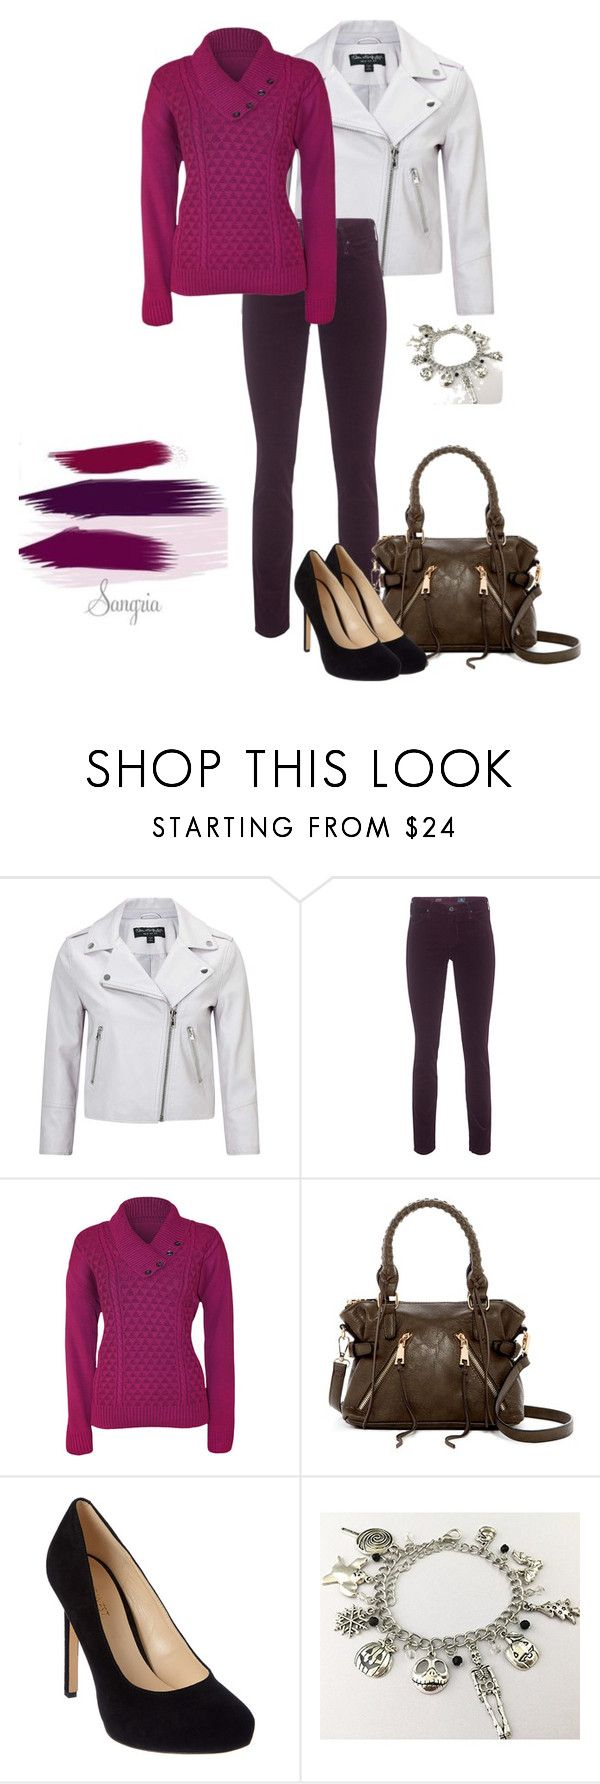 """""""Autumn Color Palettes: Sangria"""" by camrynmarie20 ❤ liked on Polyvore featuring Miss Selfridge, AG Adriano Goldschmied, WearAll, Urban Expressions and Nine West"""